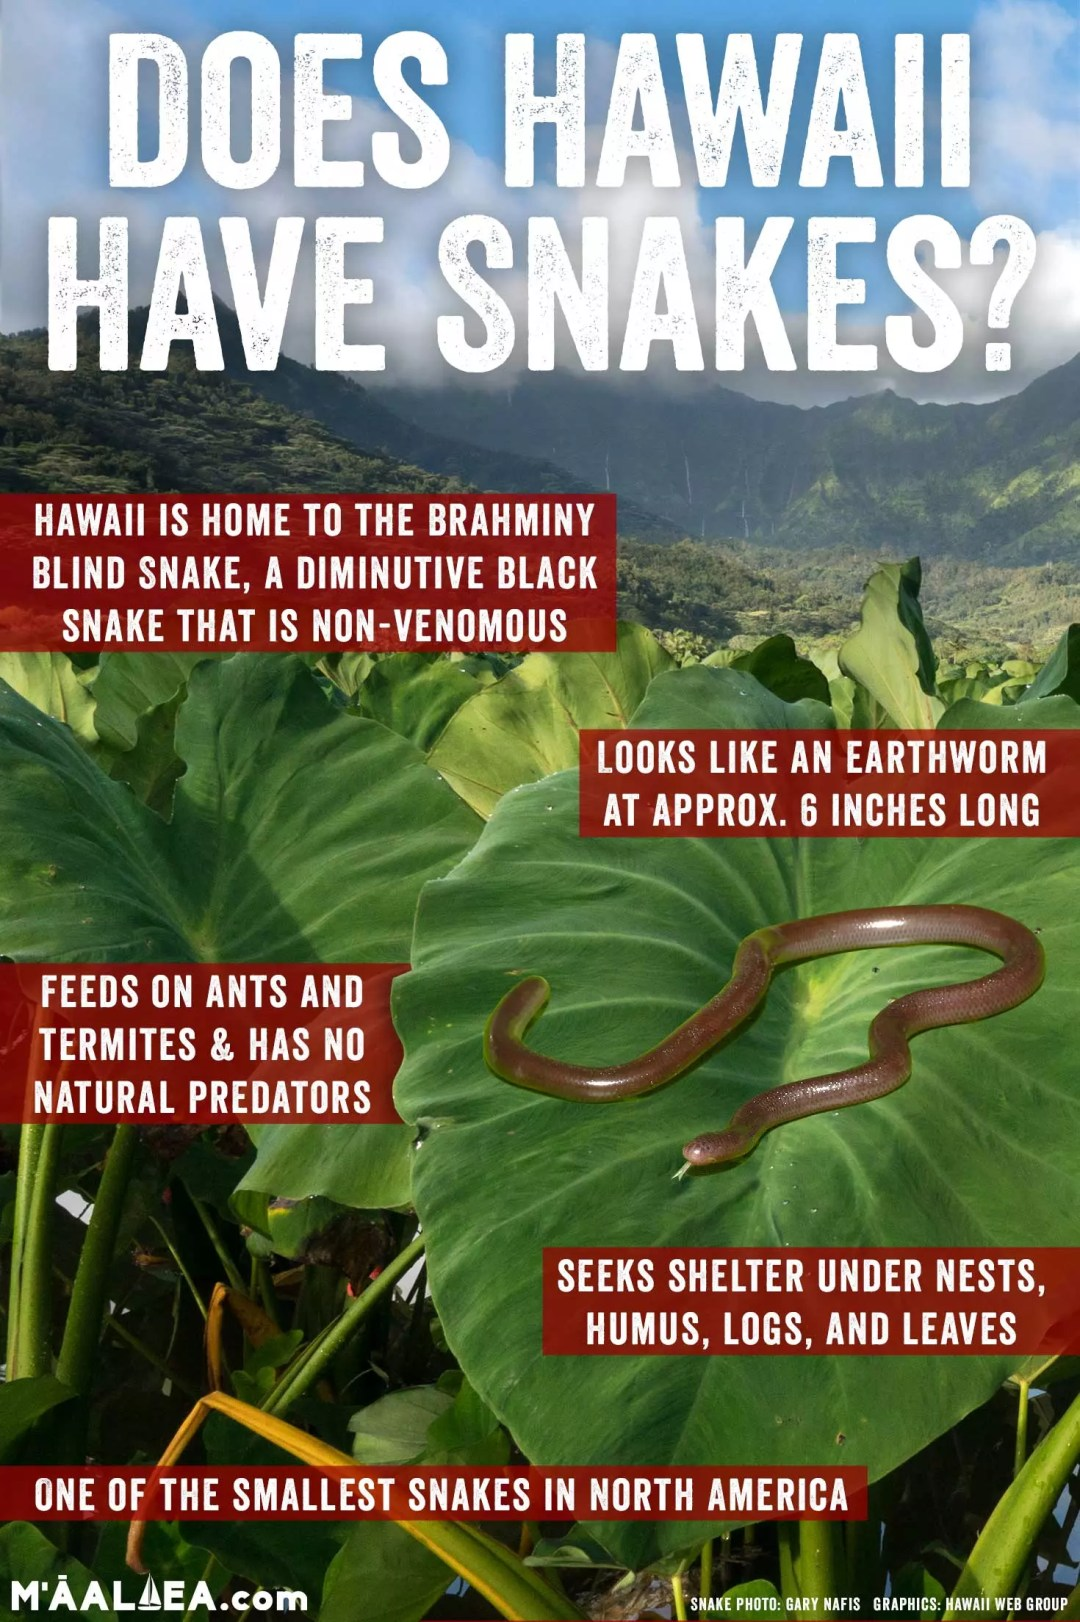 Does Hawaii have snakes?